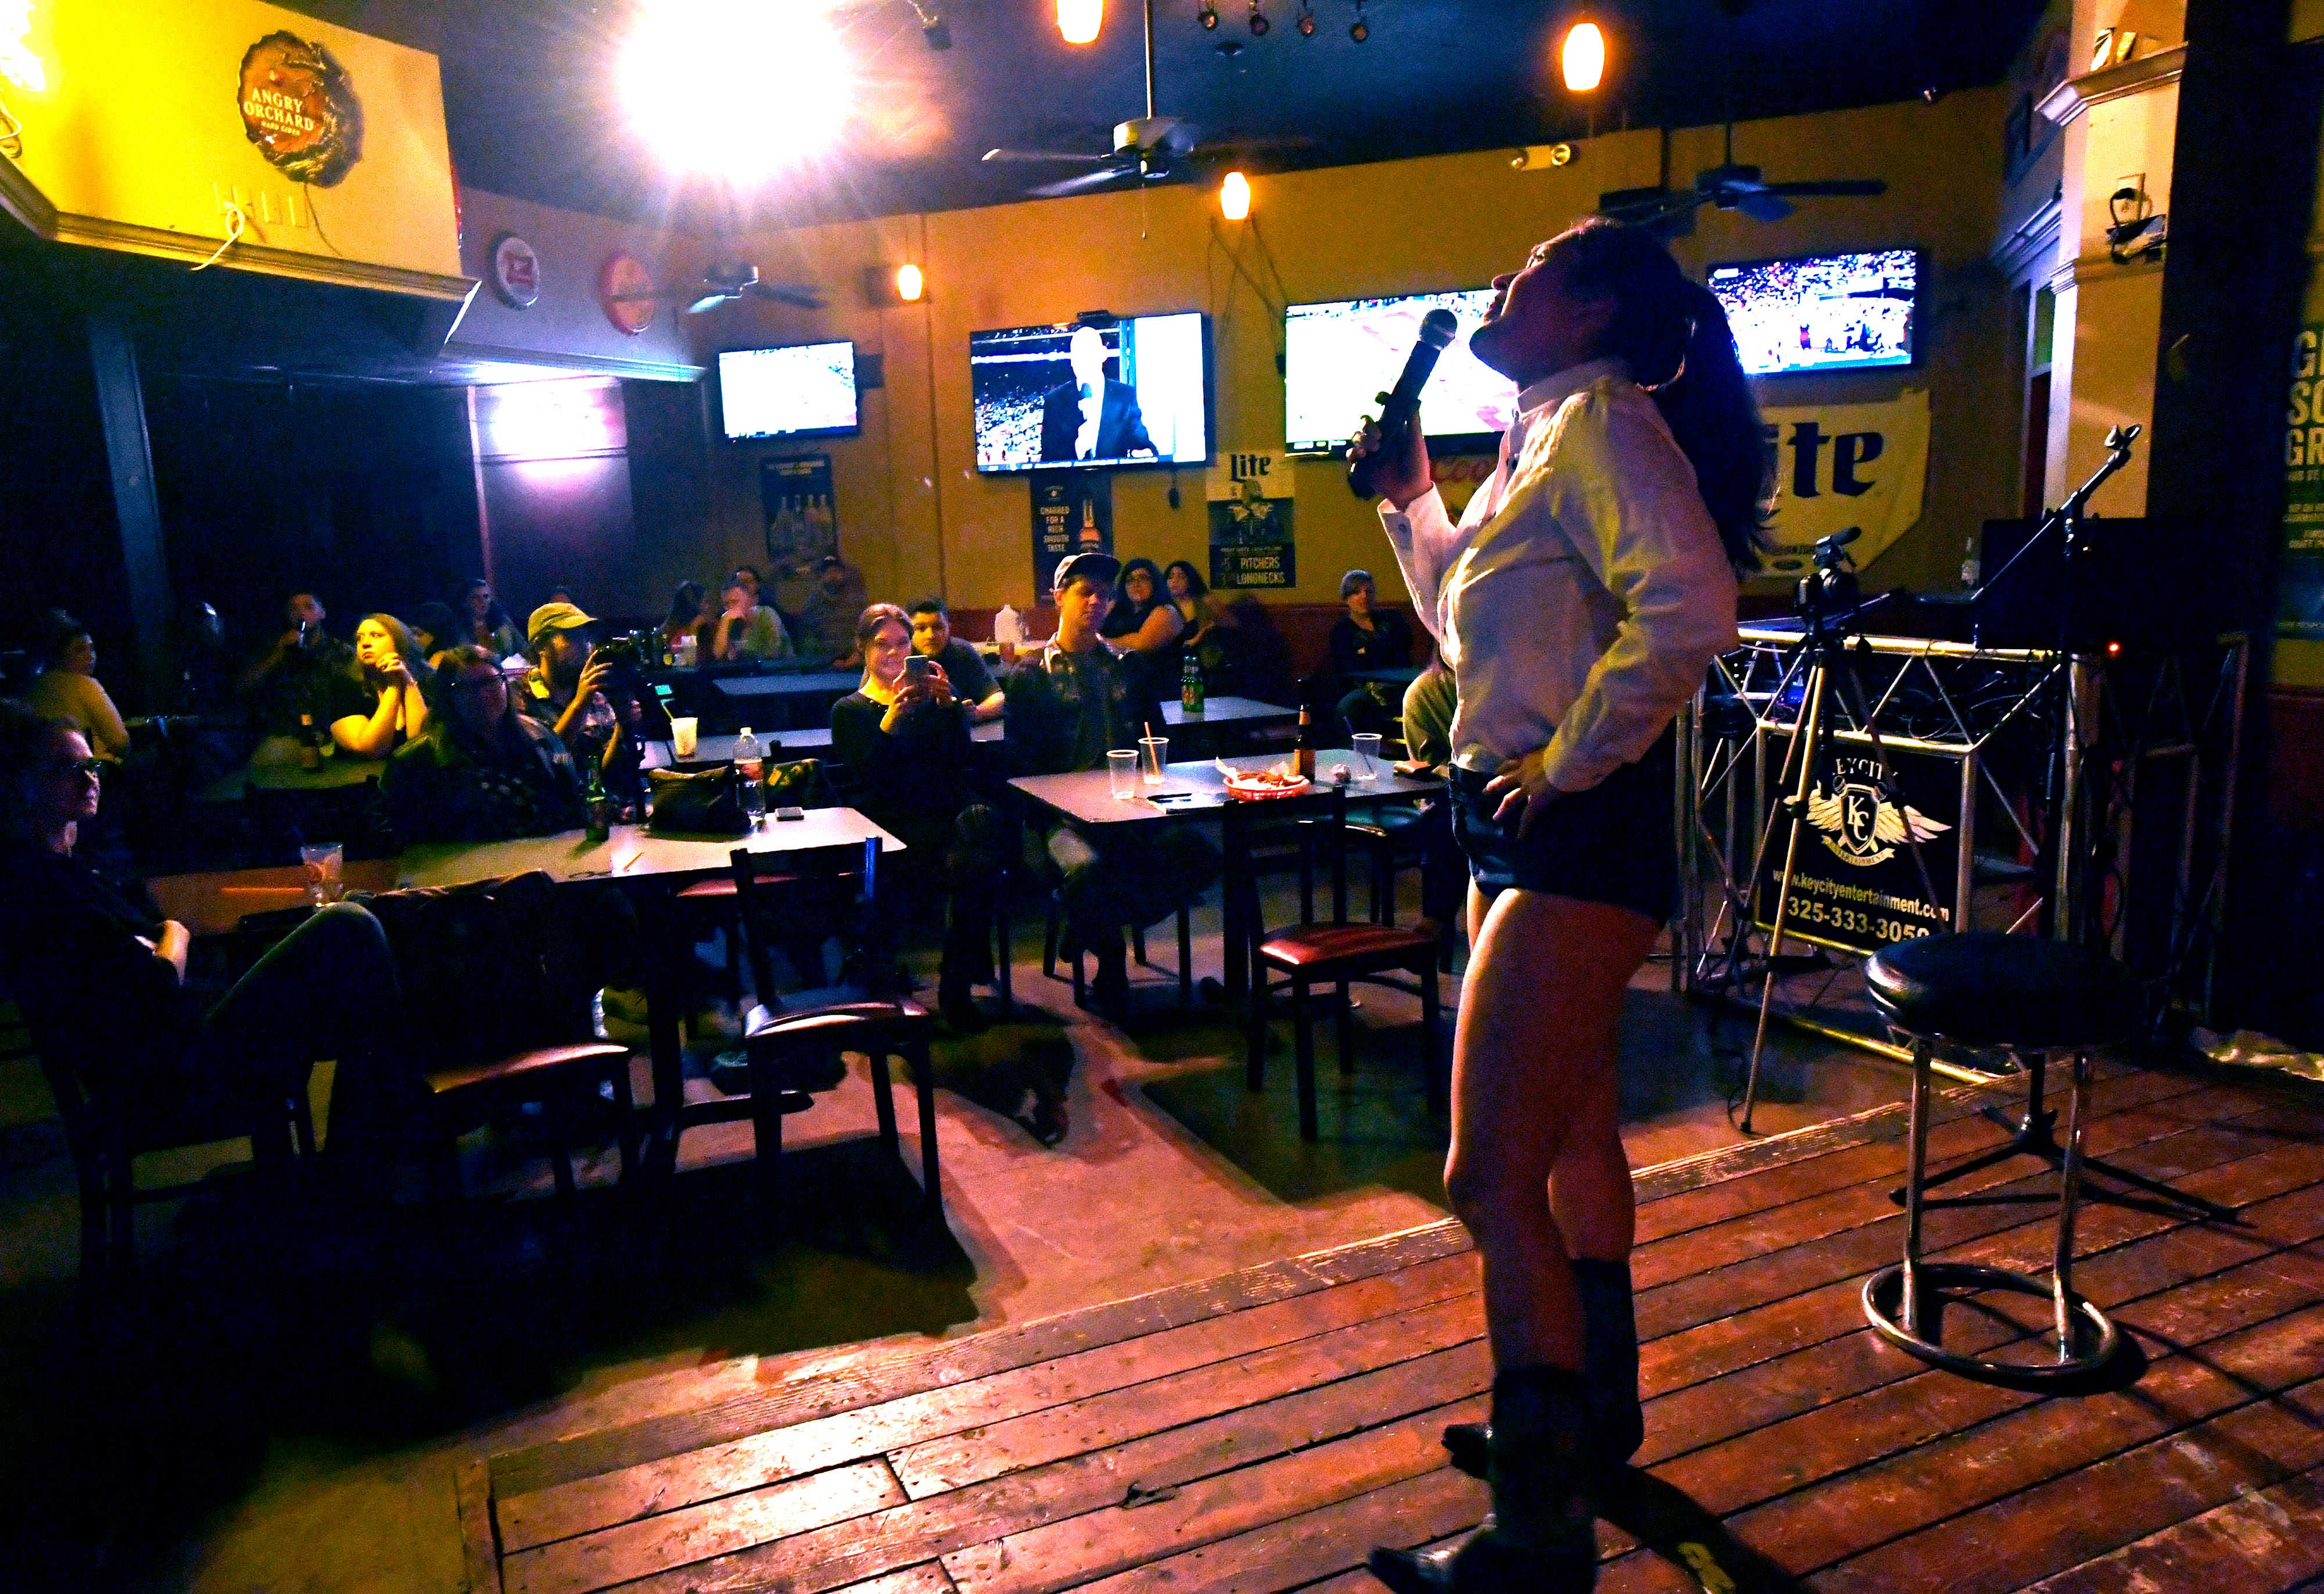 Leilani Carrasco gives a stand-up comedy routine about her attire during Open Mic Comedy Night at The Zone Bar & Grill.